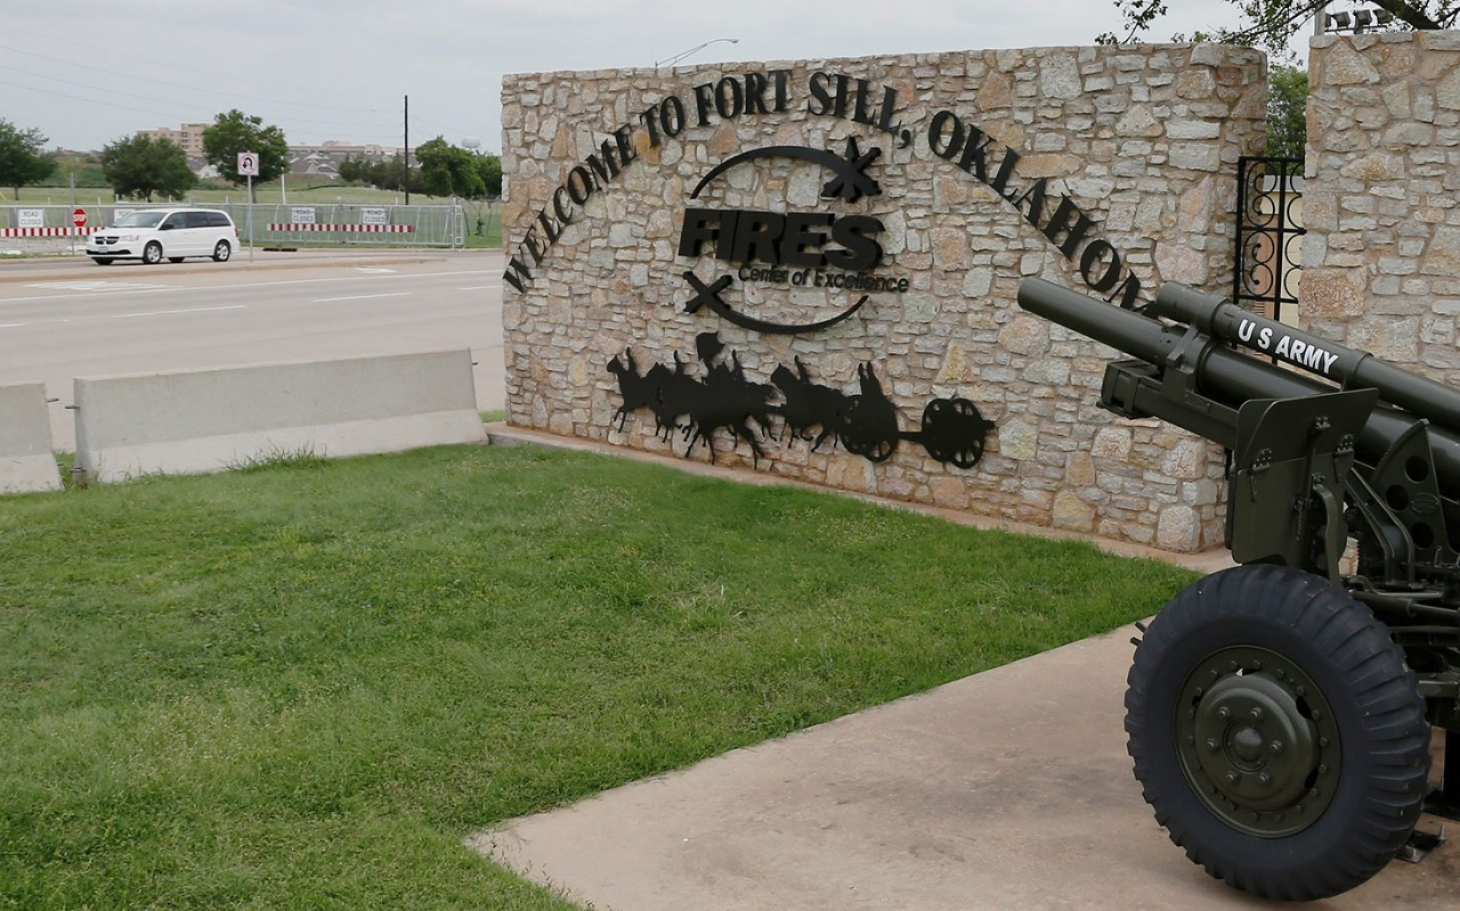 Oklahoma Town Divided On Influx Of Immigrant Kids To Army